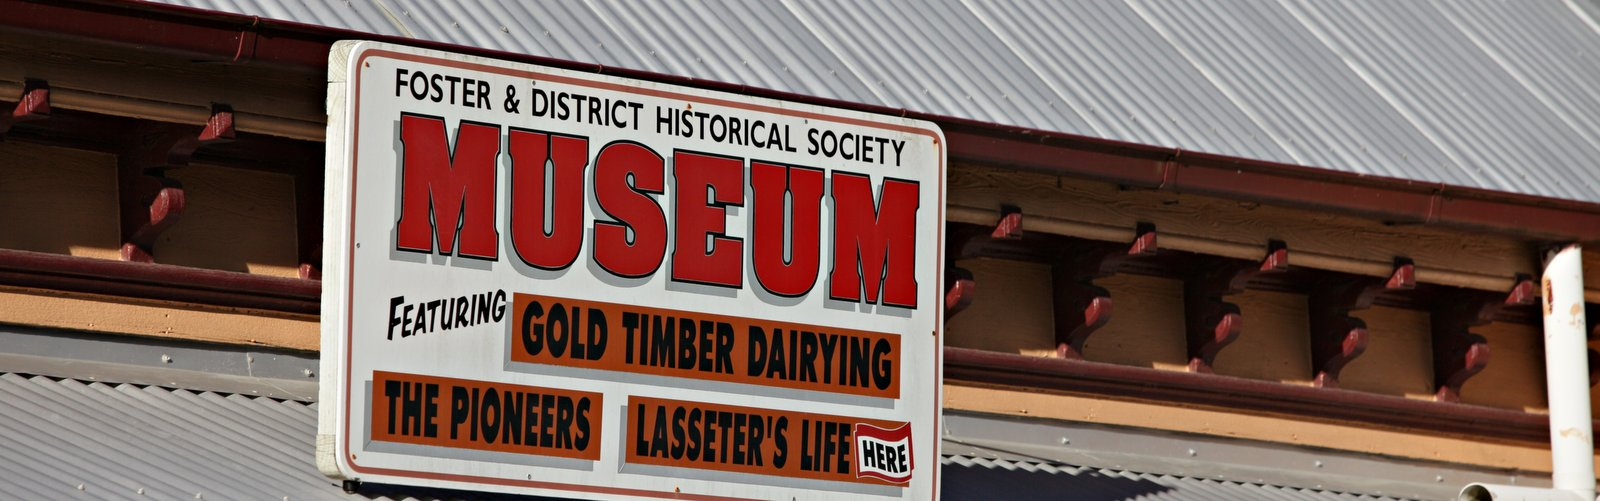 Foster Museum